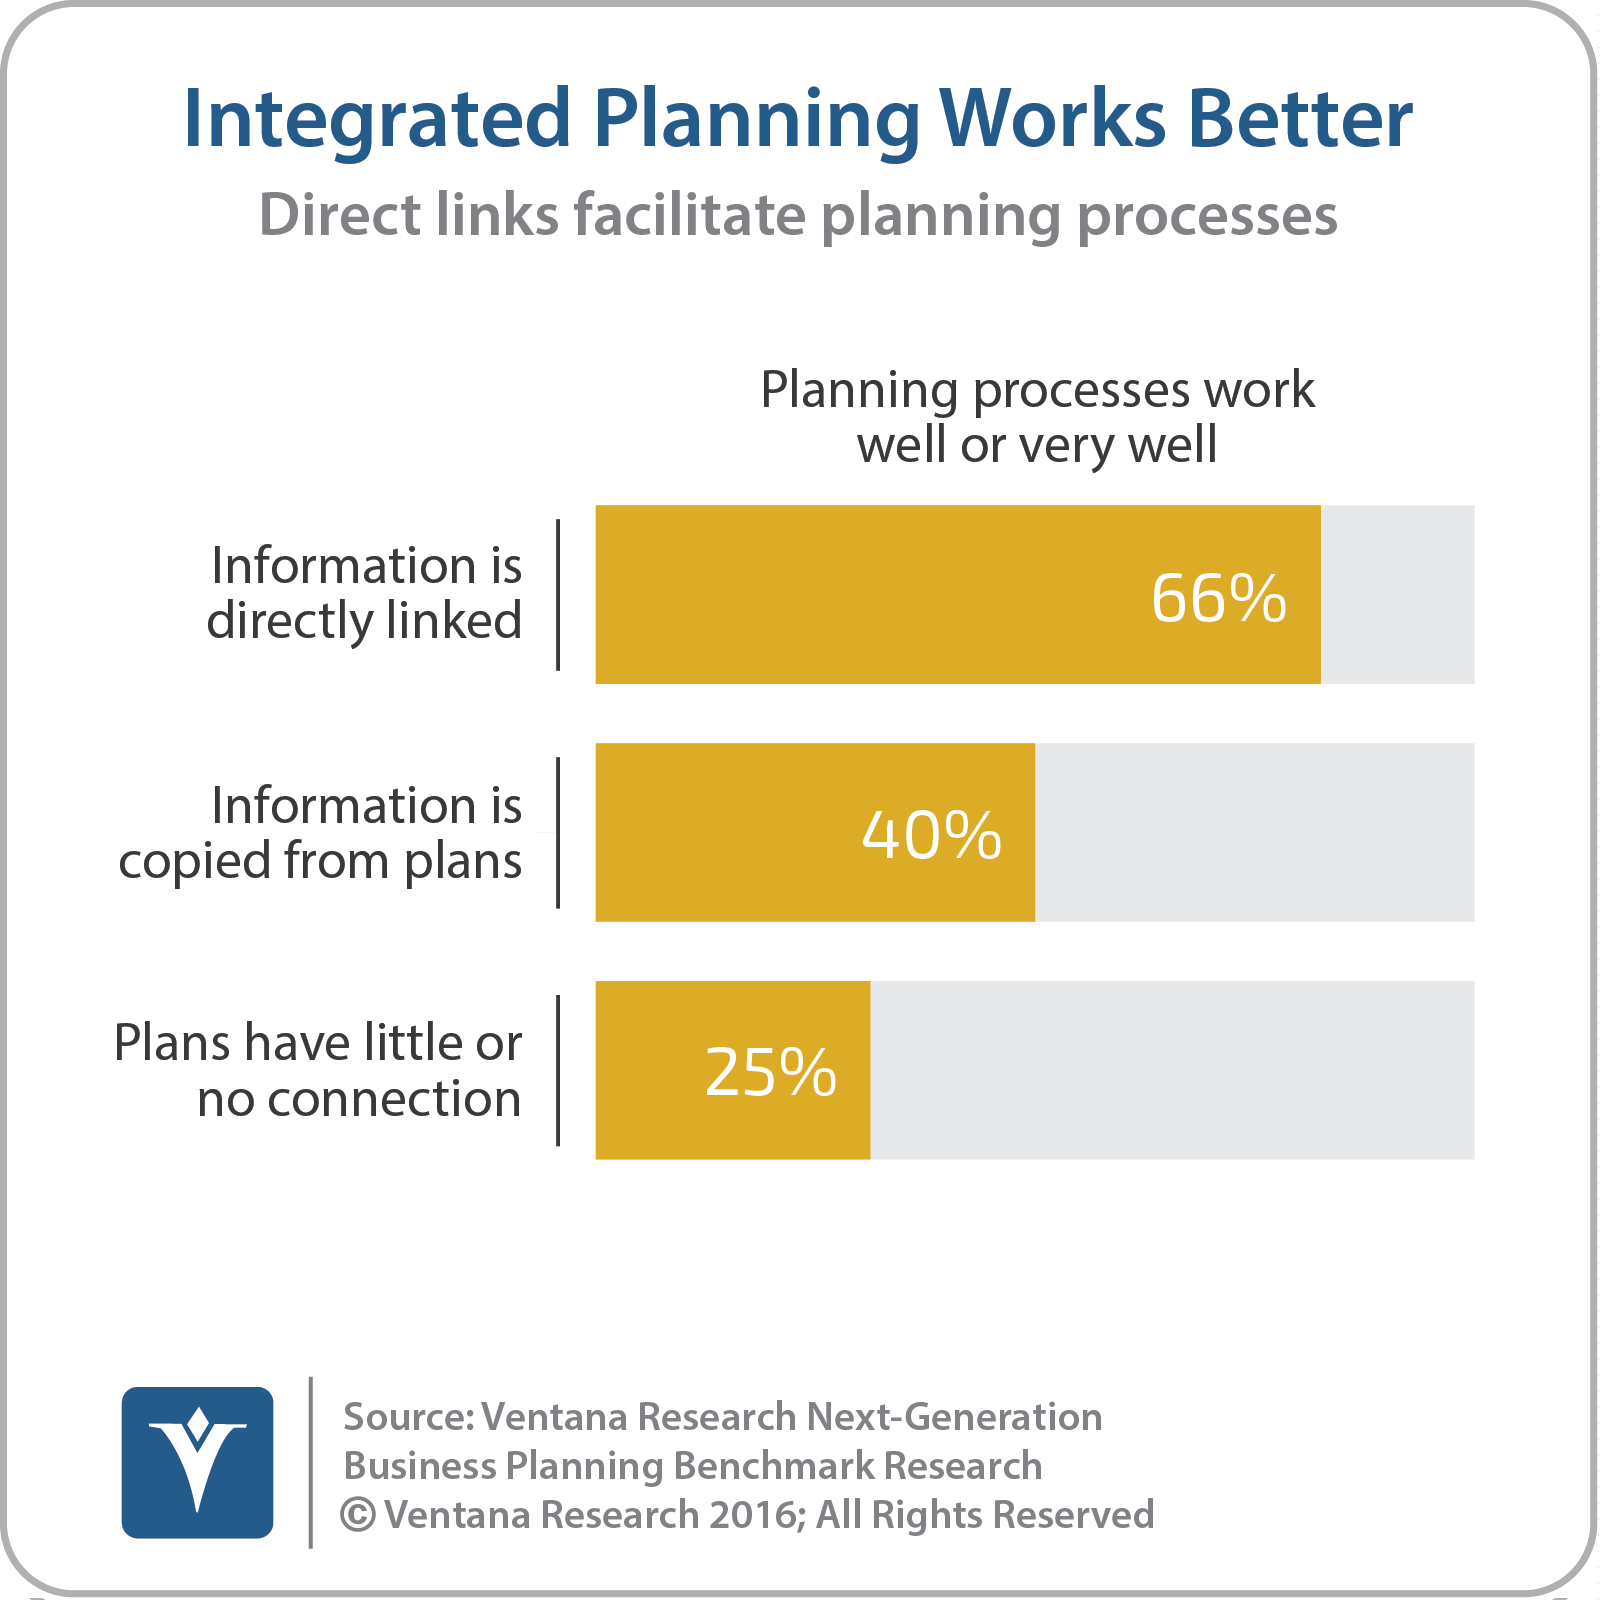 vr_NGBP_02_integrated_planning_works_better_update-5.png